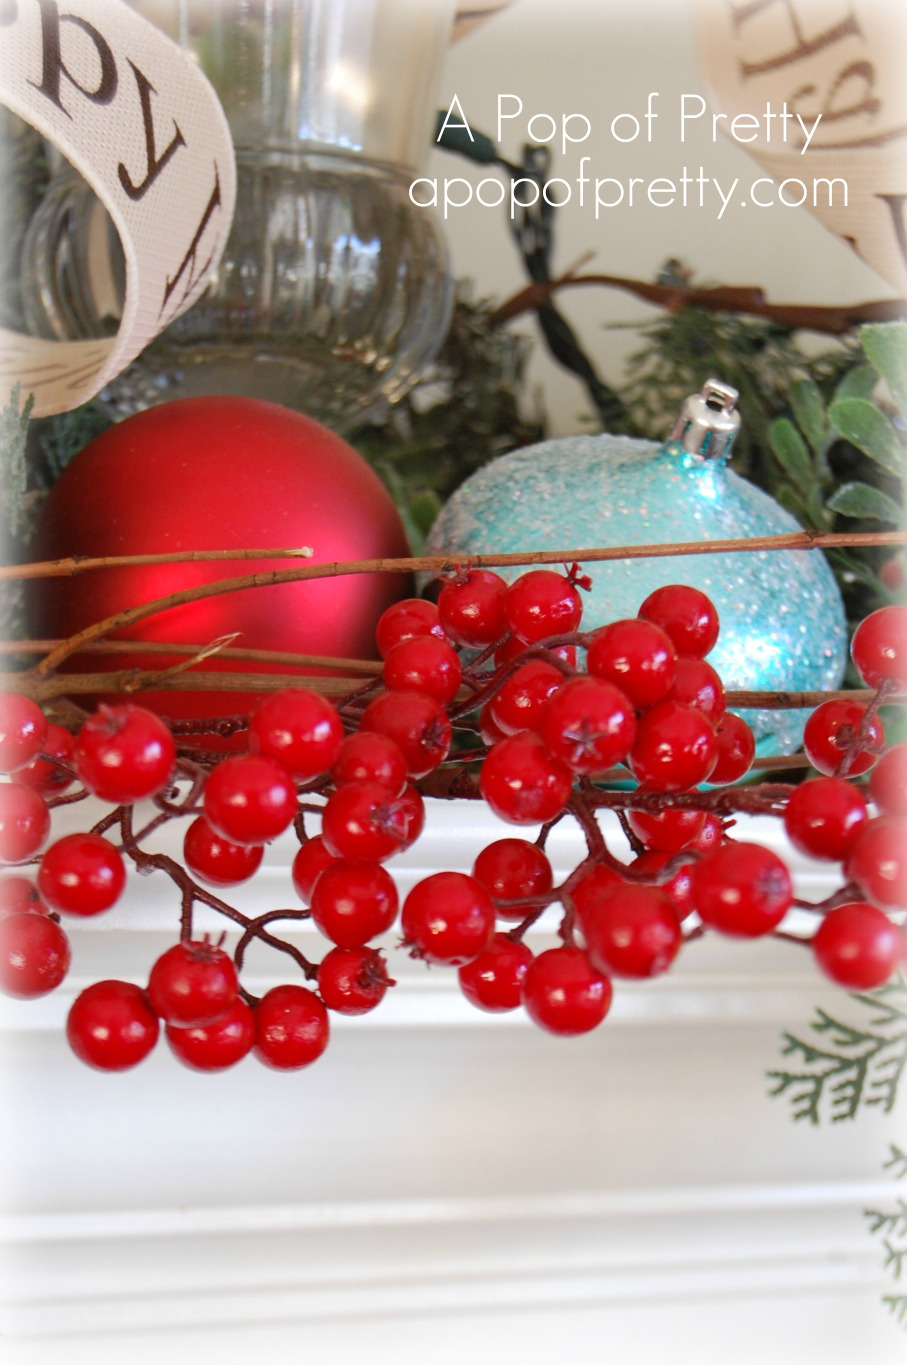 How to Decorate a Christmas Mantel / Mantle (Step-by-Step Tutorial)